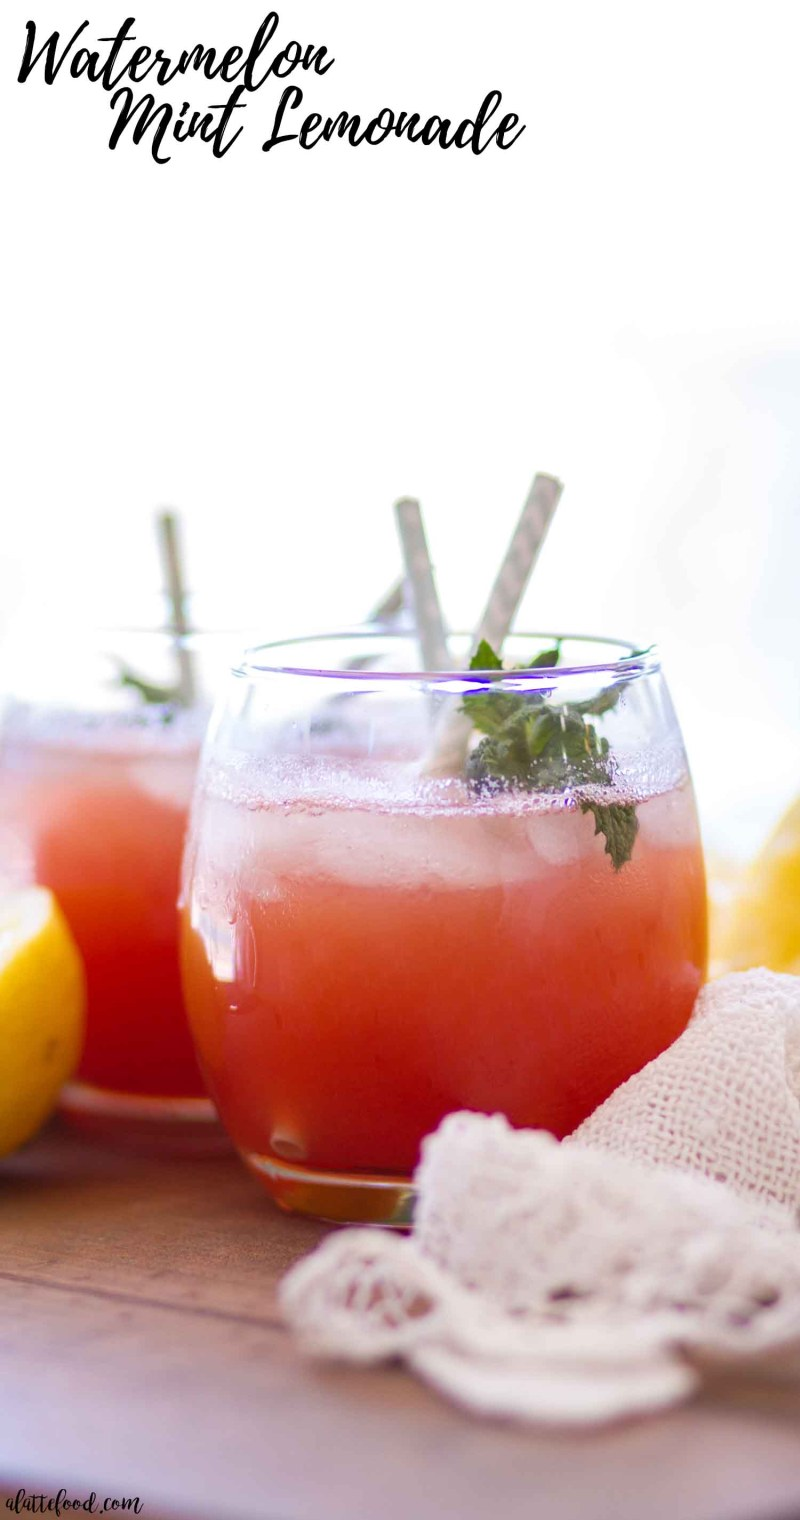 This easy Watermelon Mint Lemonade recipe is the perfect summer beverage! This homemade lemonade recipe has only 5-ingredients and is refined sugar free!